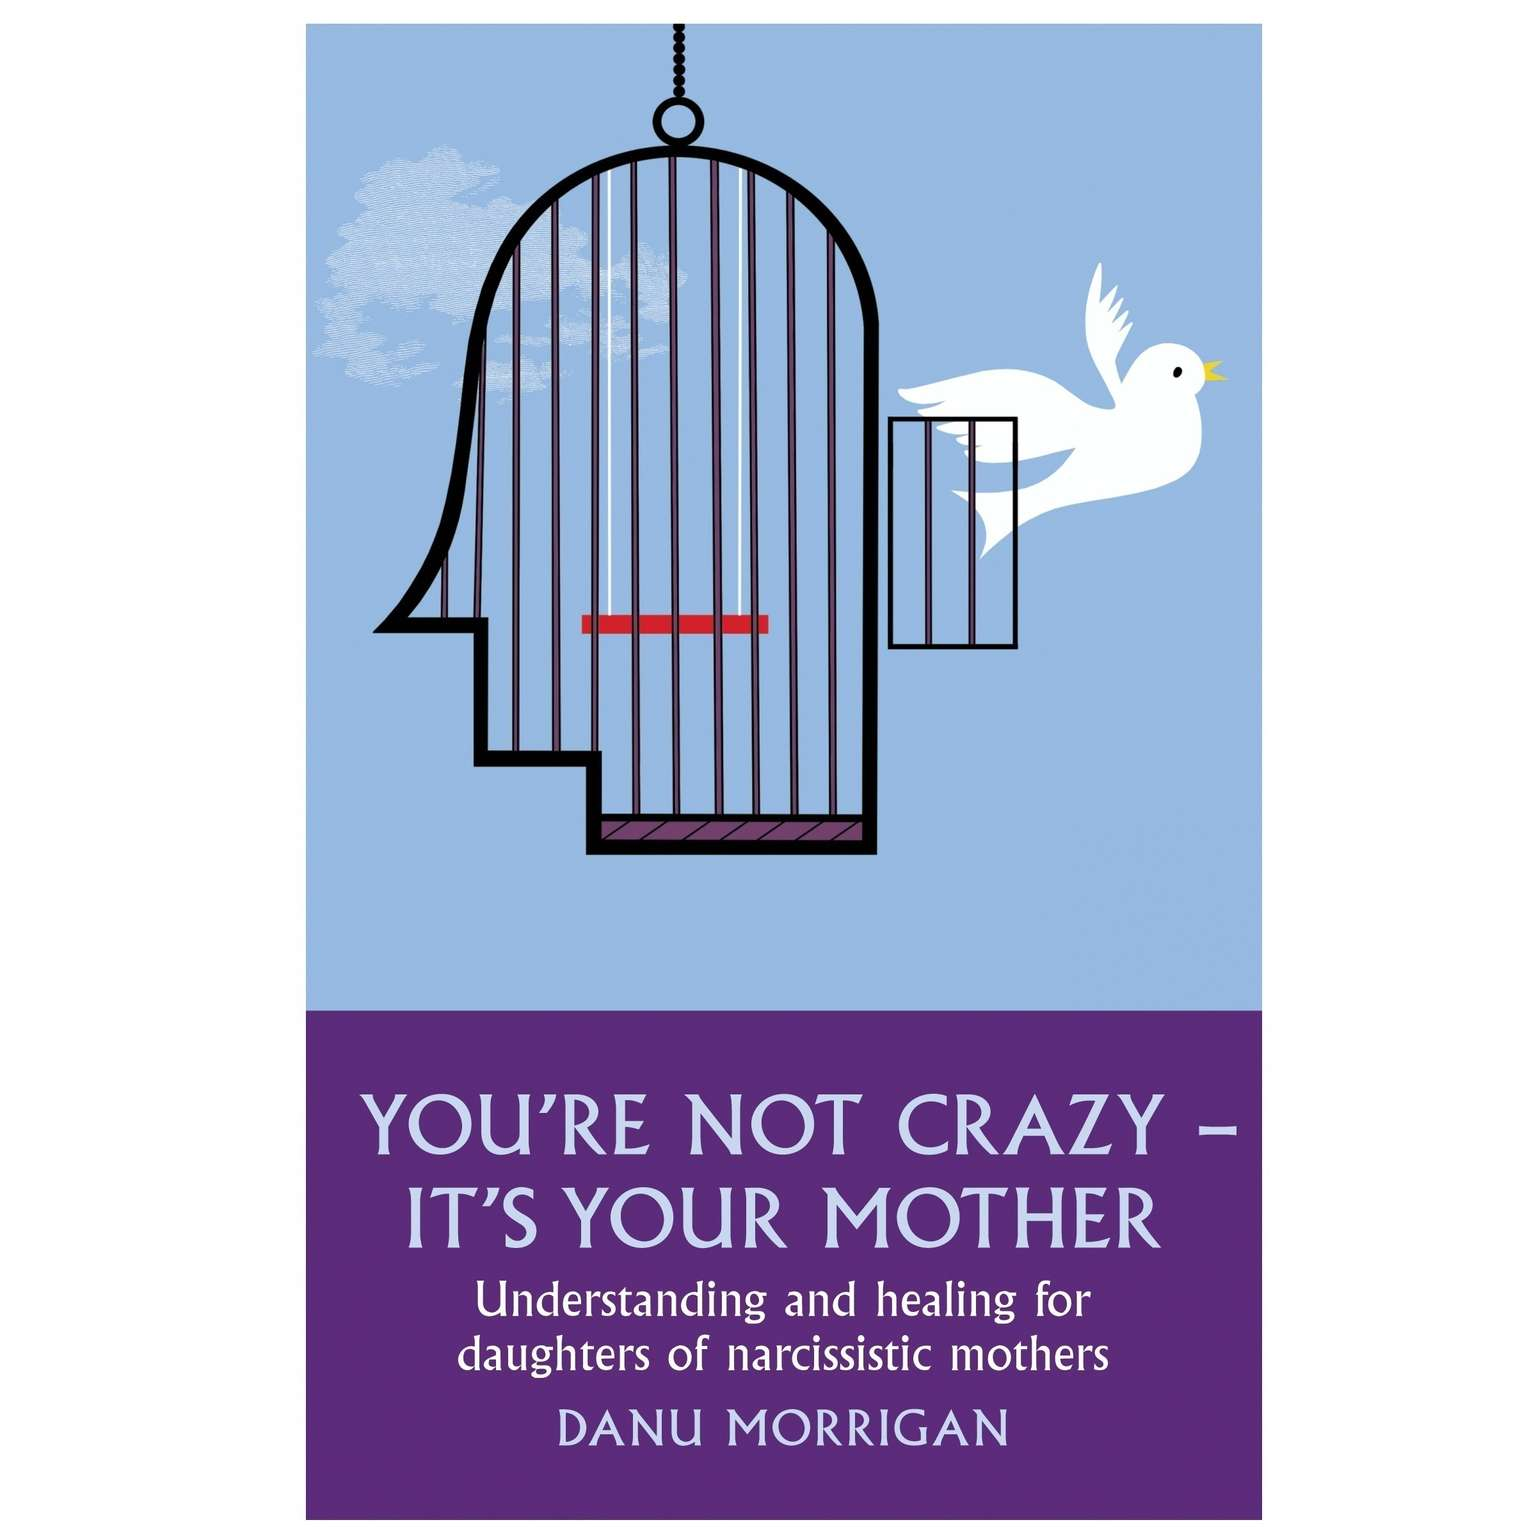 You're Not Crazy—It's Your Mother: Understanding and Healing for Daughters of Narcissistic Mothers Audiobook, by Danu Morrigan